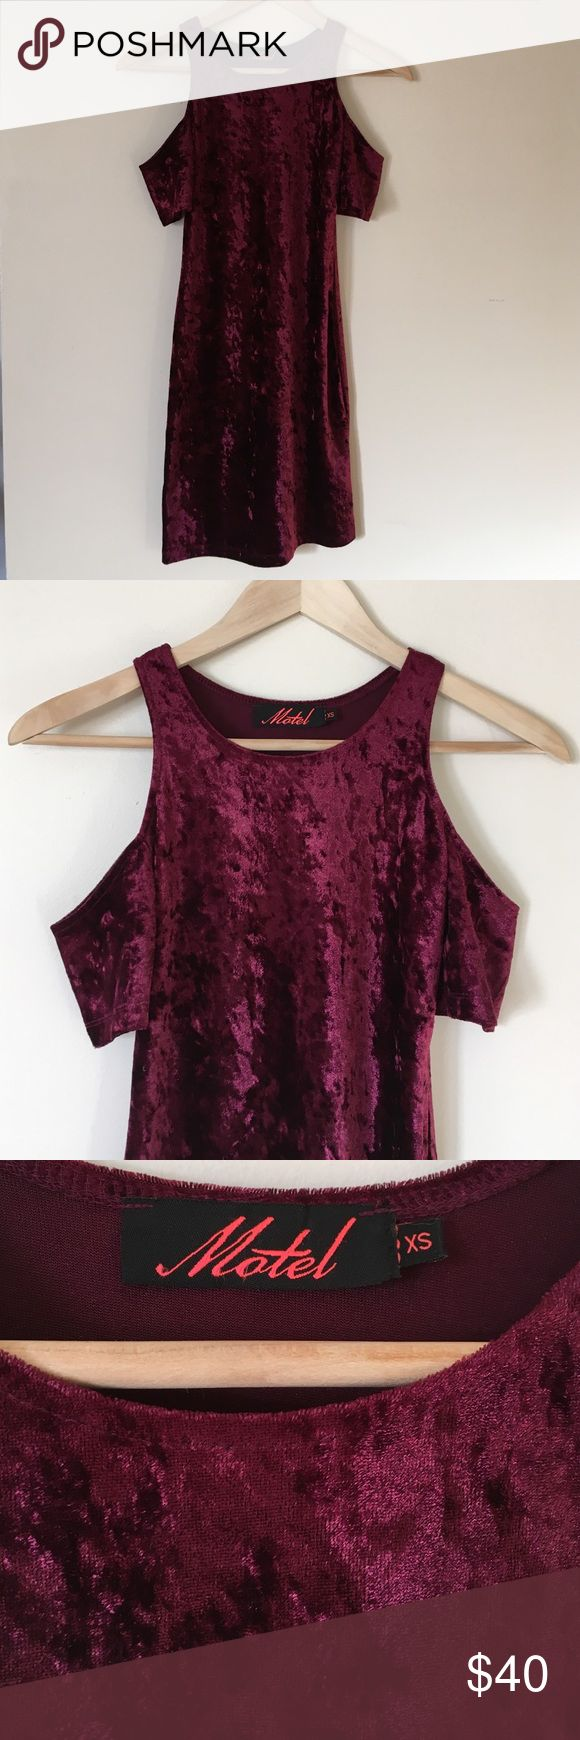 Motel Rocks party dress Crushed velvet. Perfect party dress for NYE. Peek-a-boo shoulders. Excellent condition. Nasty Gal Dresses Mini